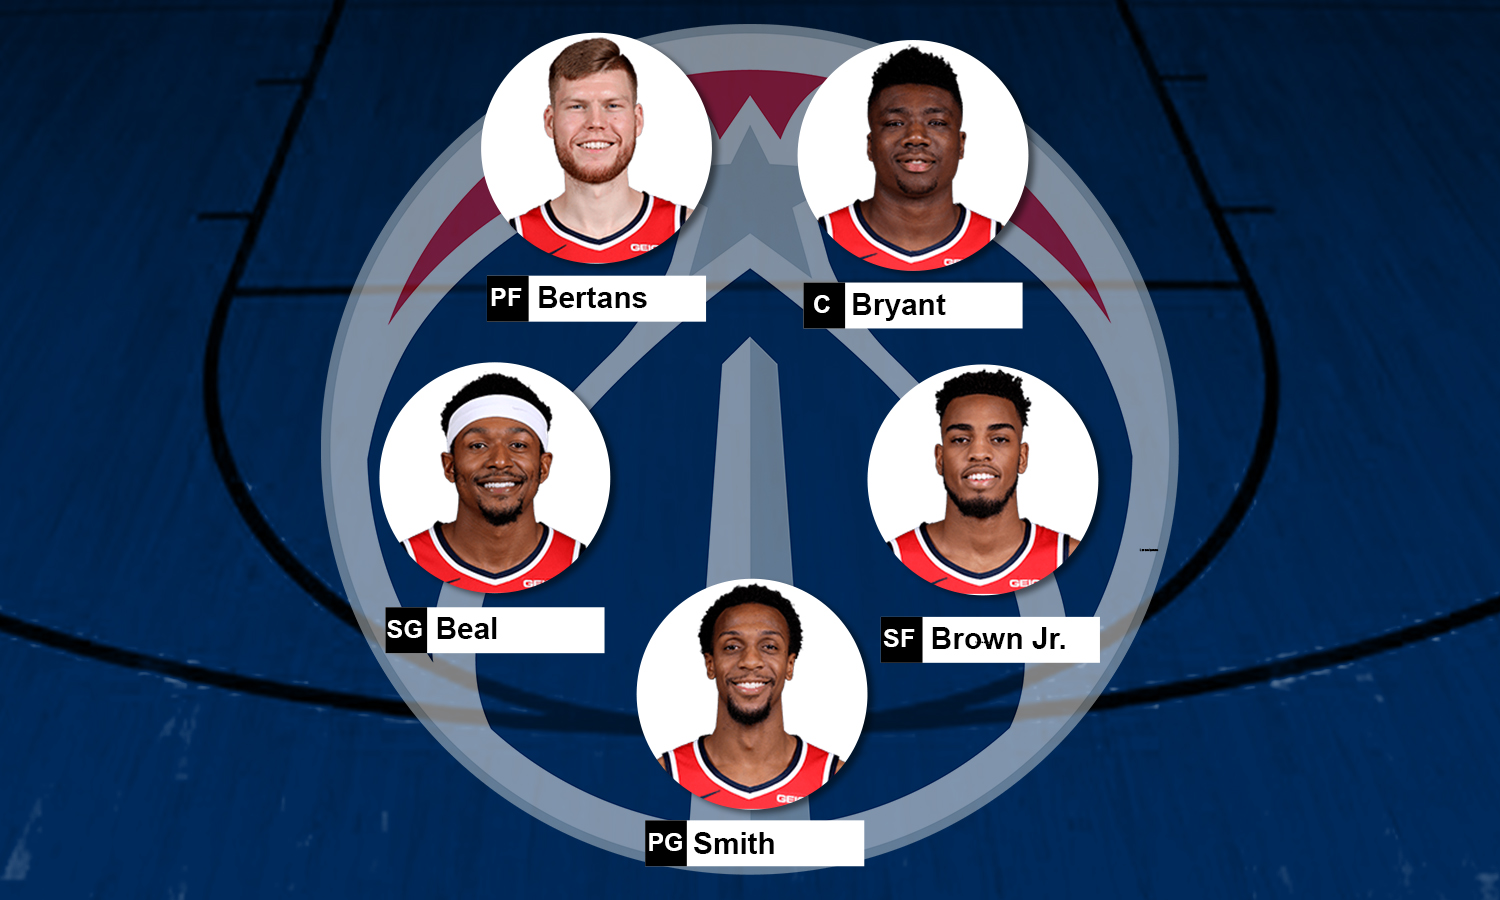 Escalação Washington Wizards 2019-20